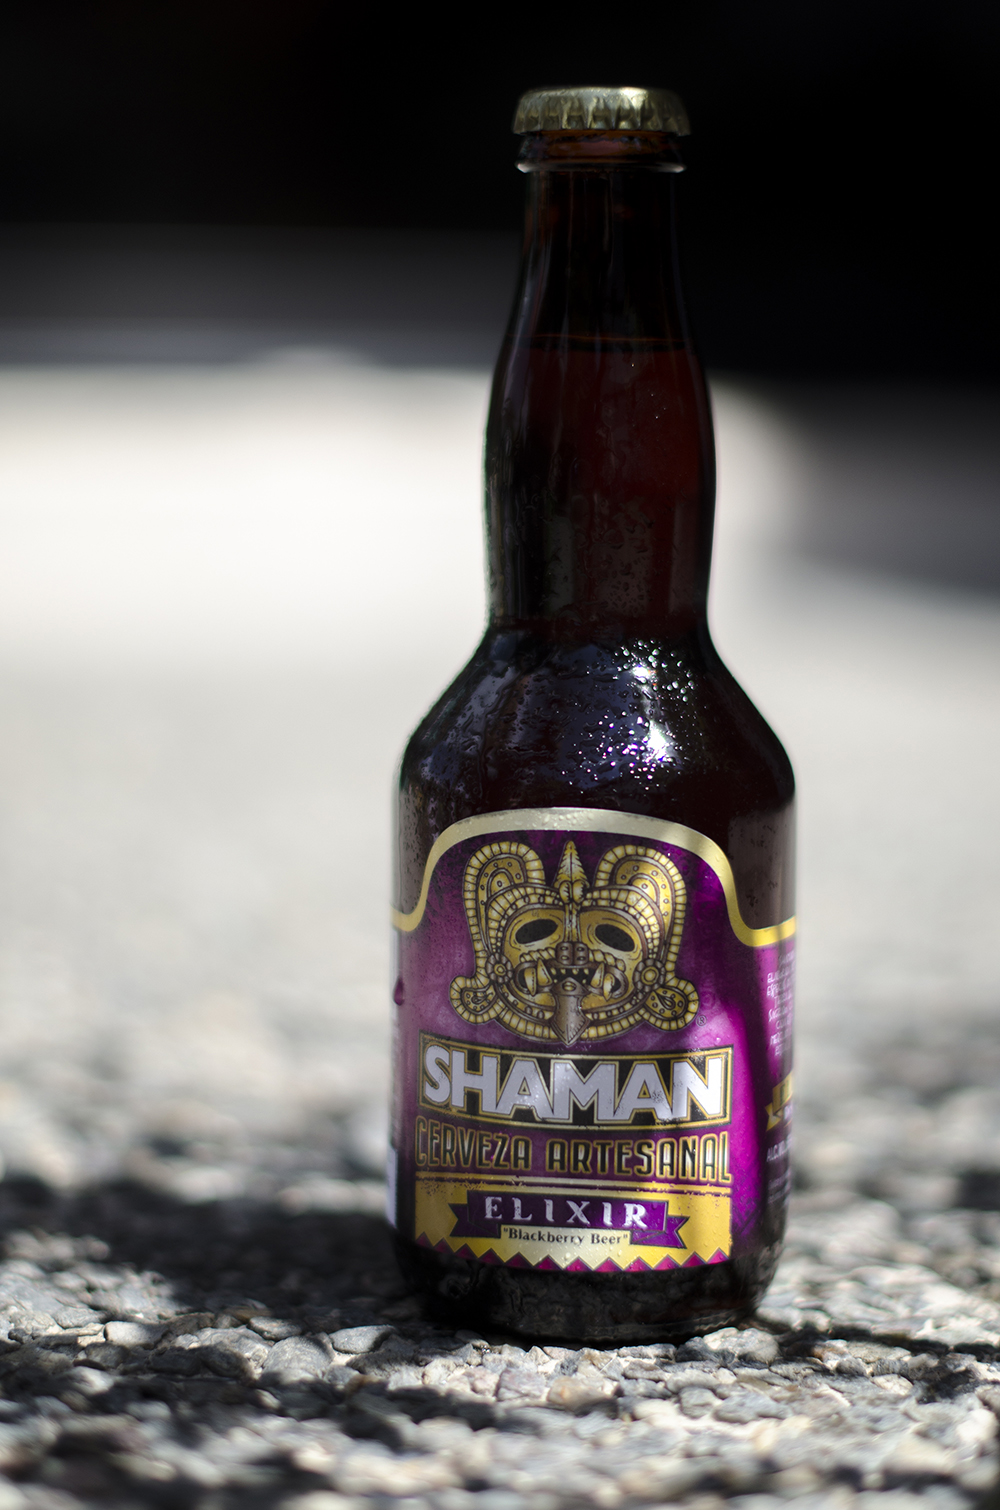 Shaman  - Elixir  Blackberry Beer  6,6%